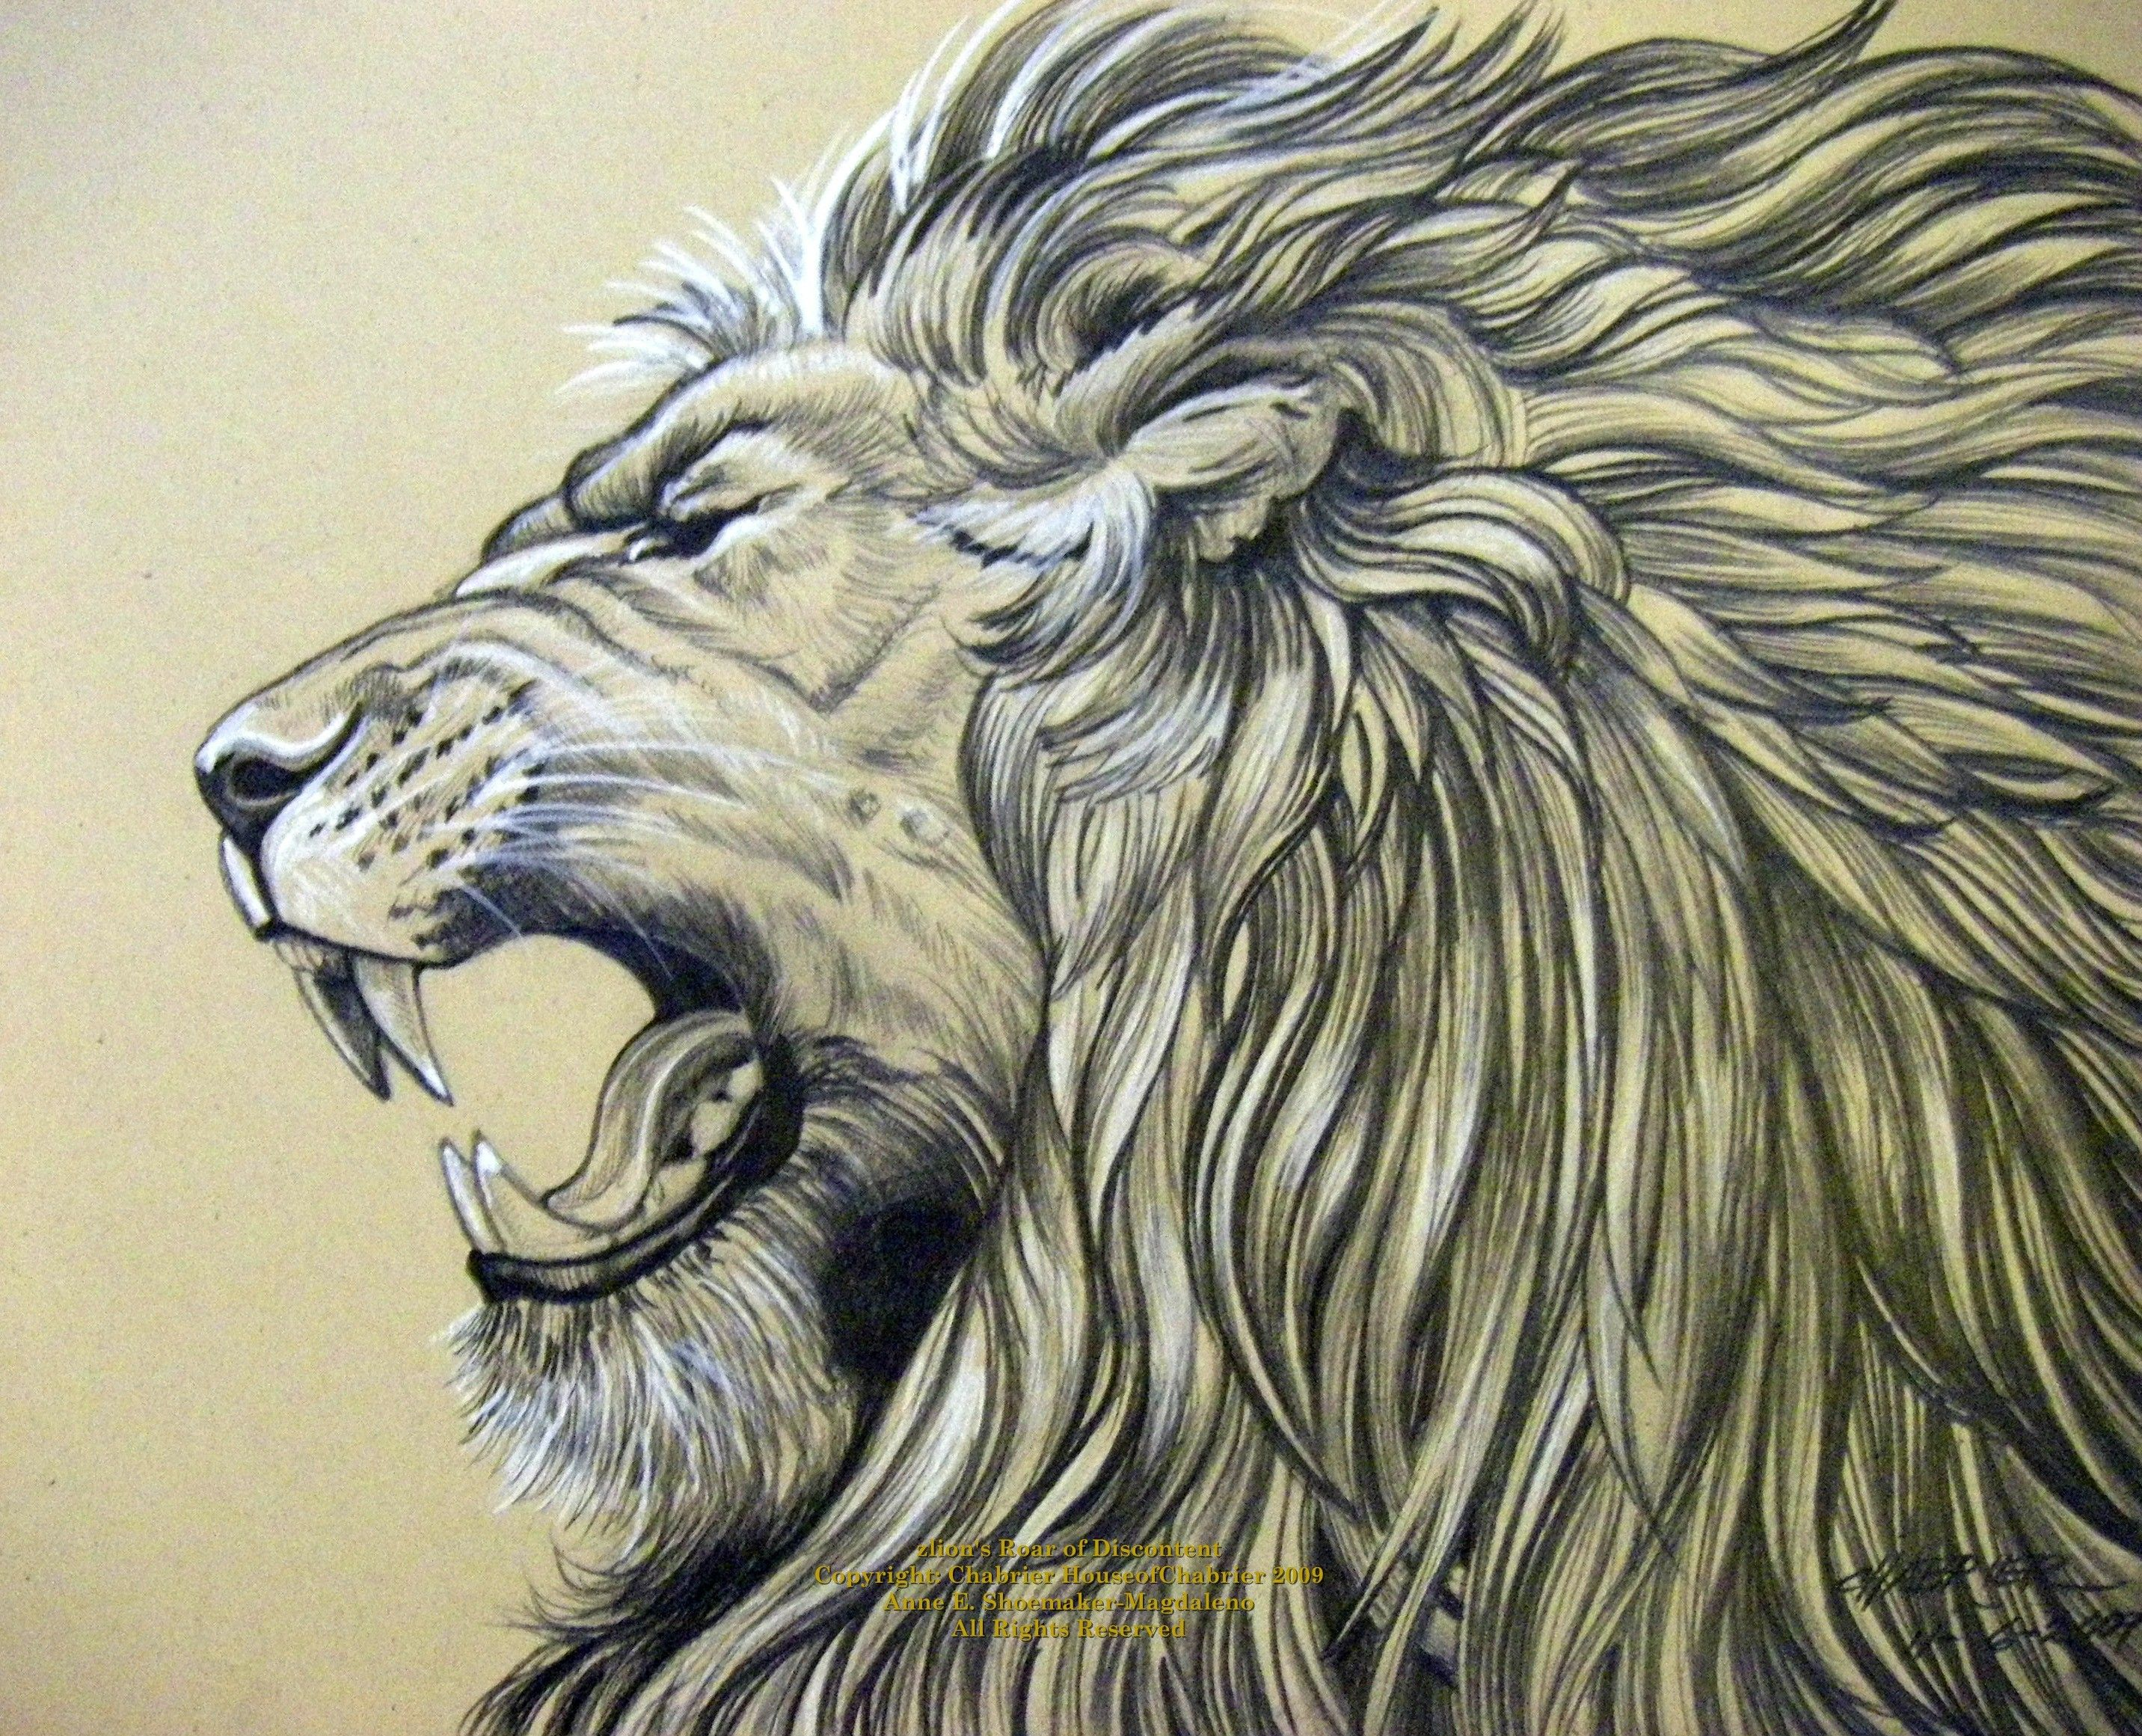 Pencil drawings of jesus lion roar by houseofchabrier shadowness